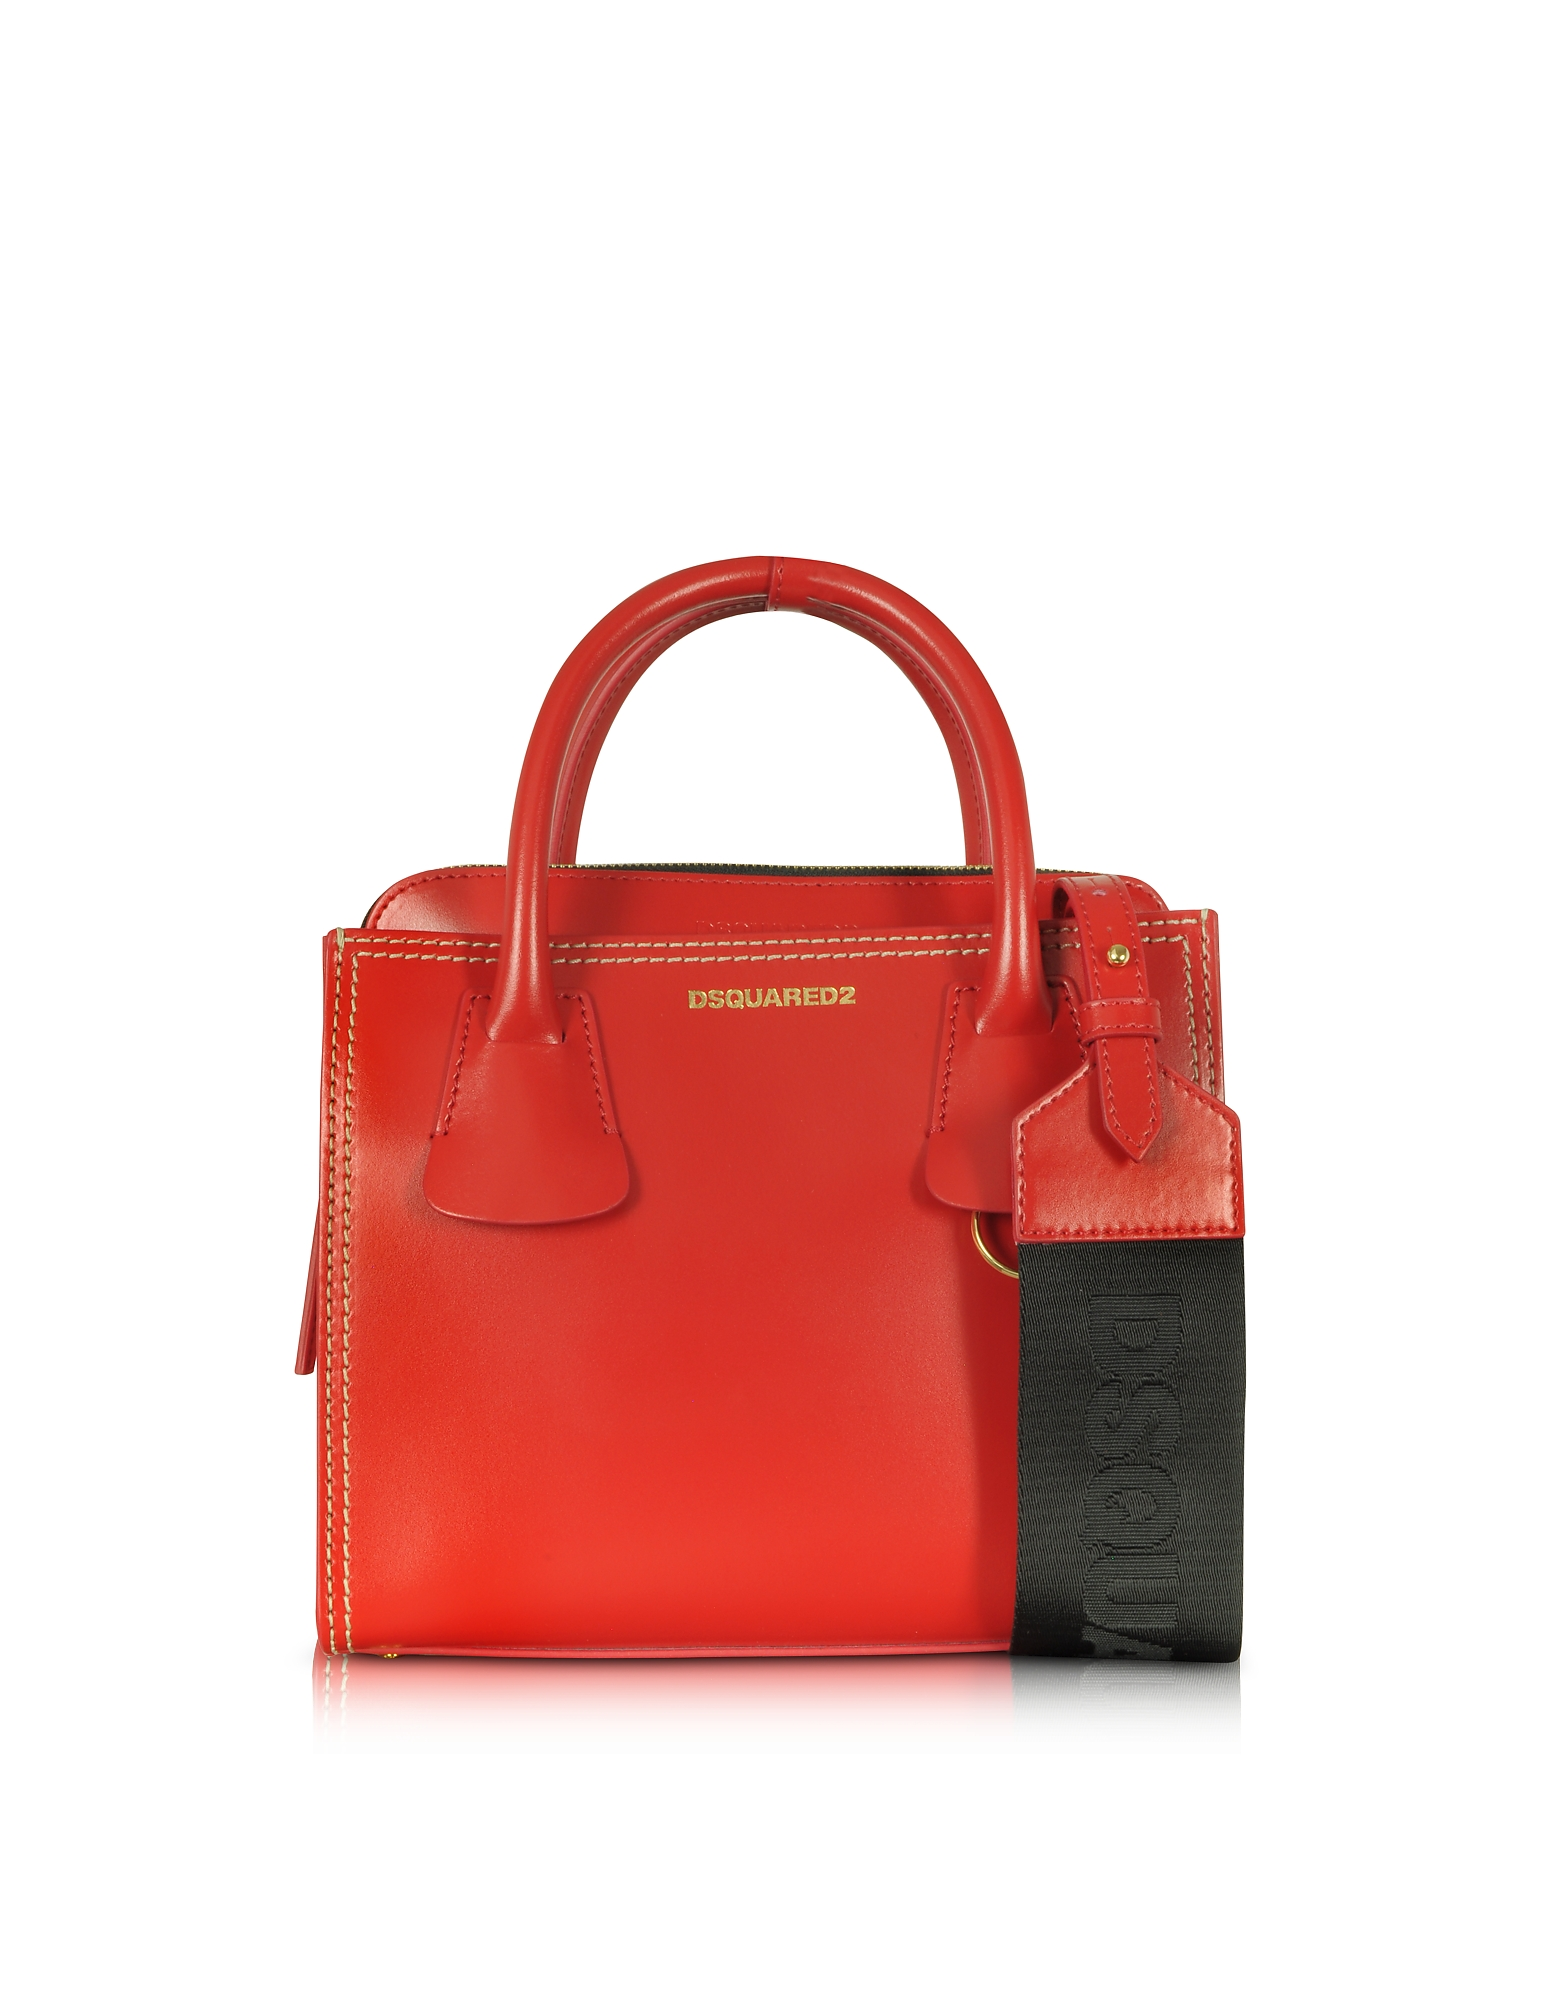 DSquared2 Handbags, Deana Small Red Leather Satchel